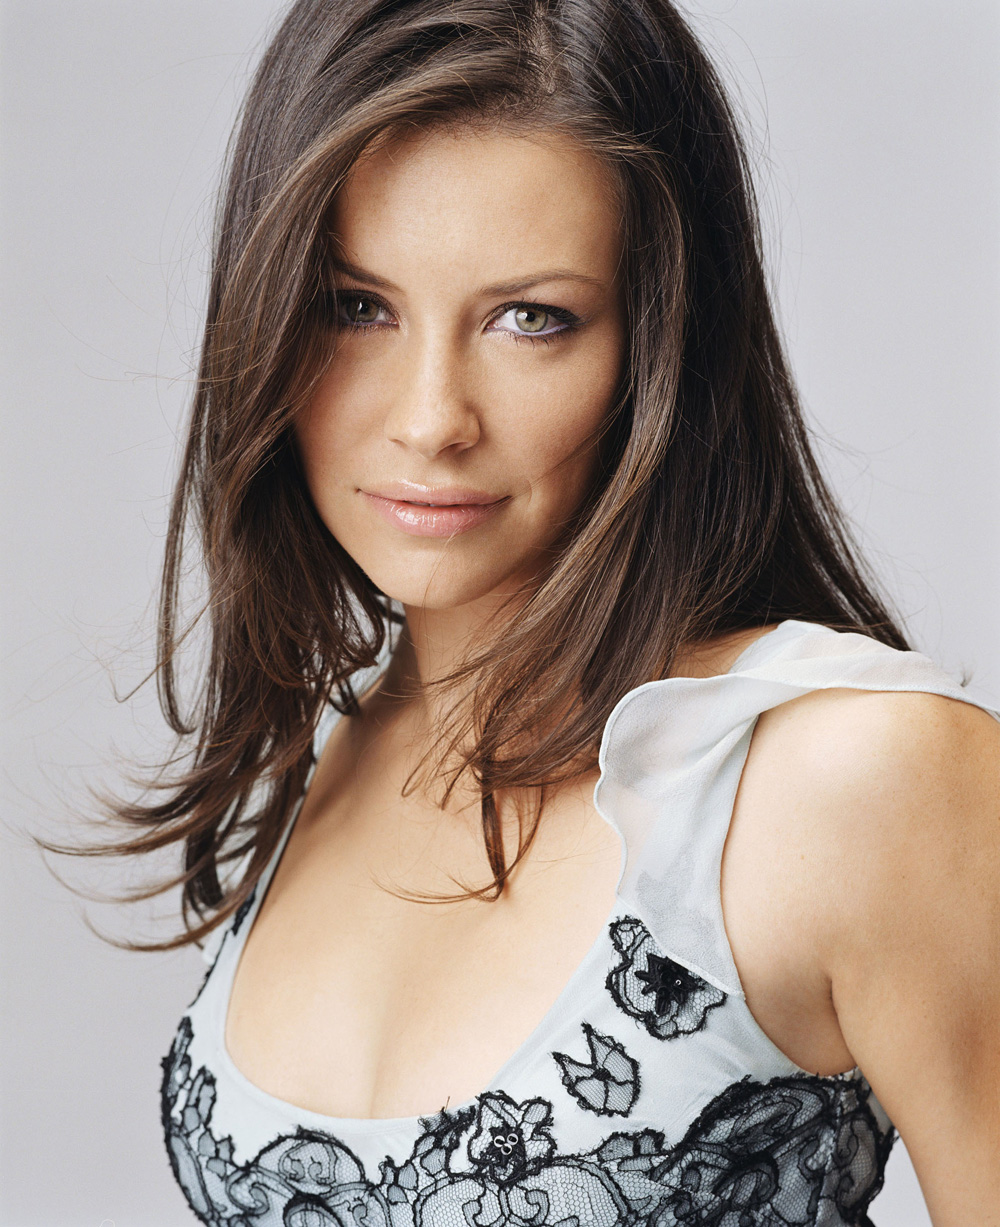 Discussion on this topic: Esther Baxter, evangeline-lilly/